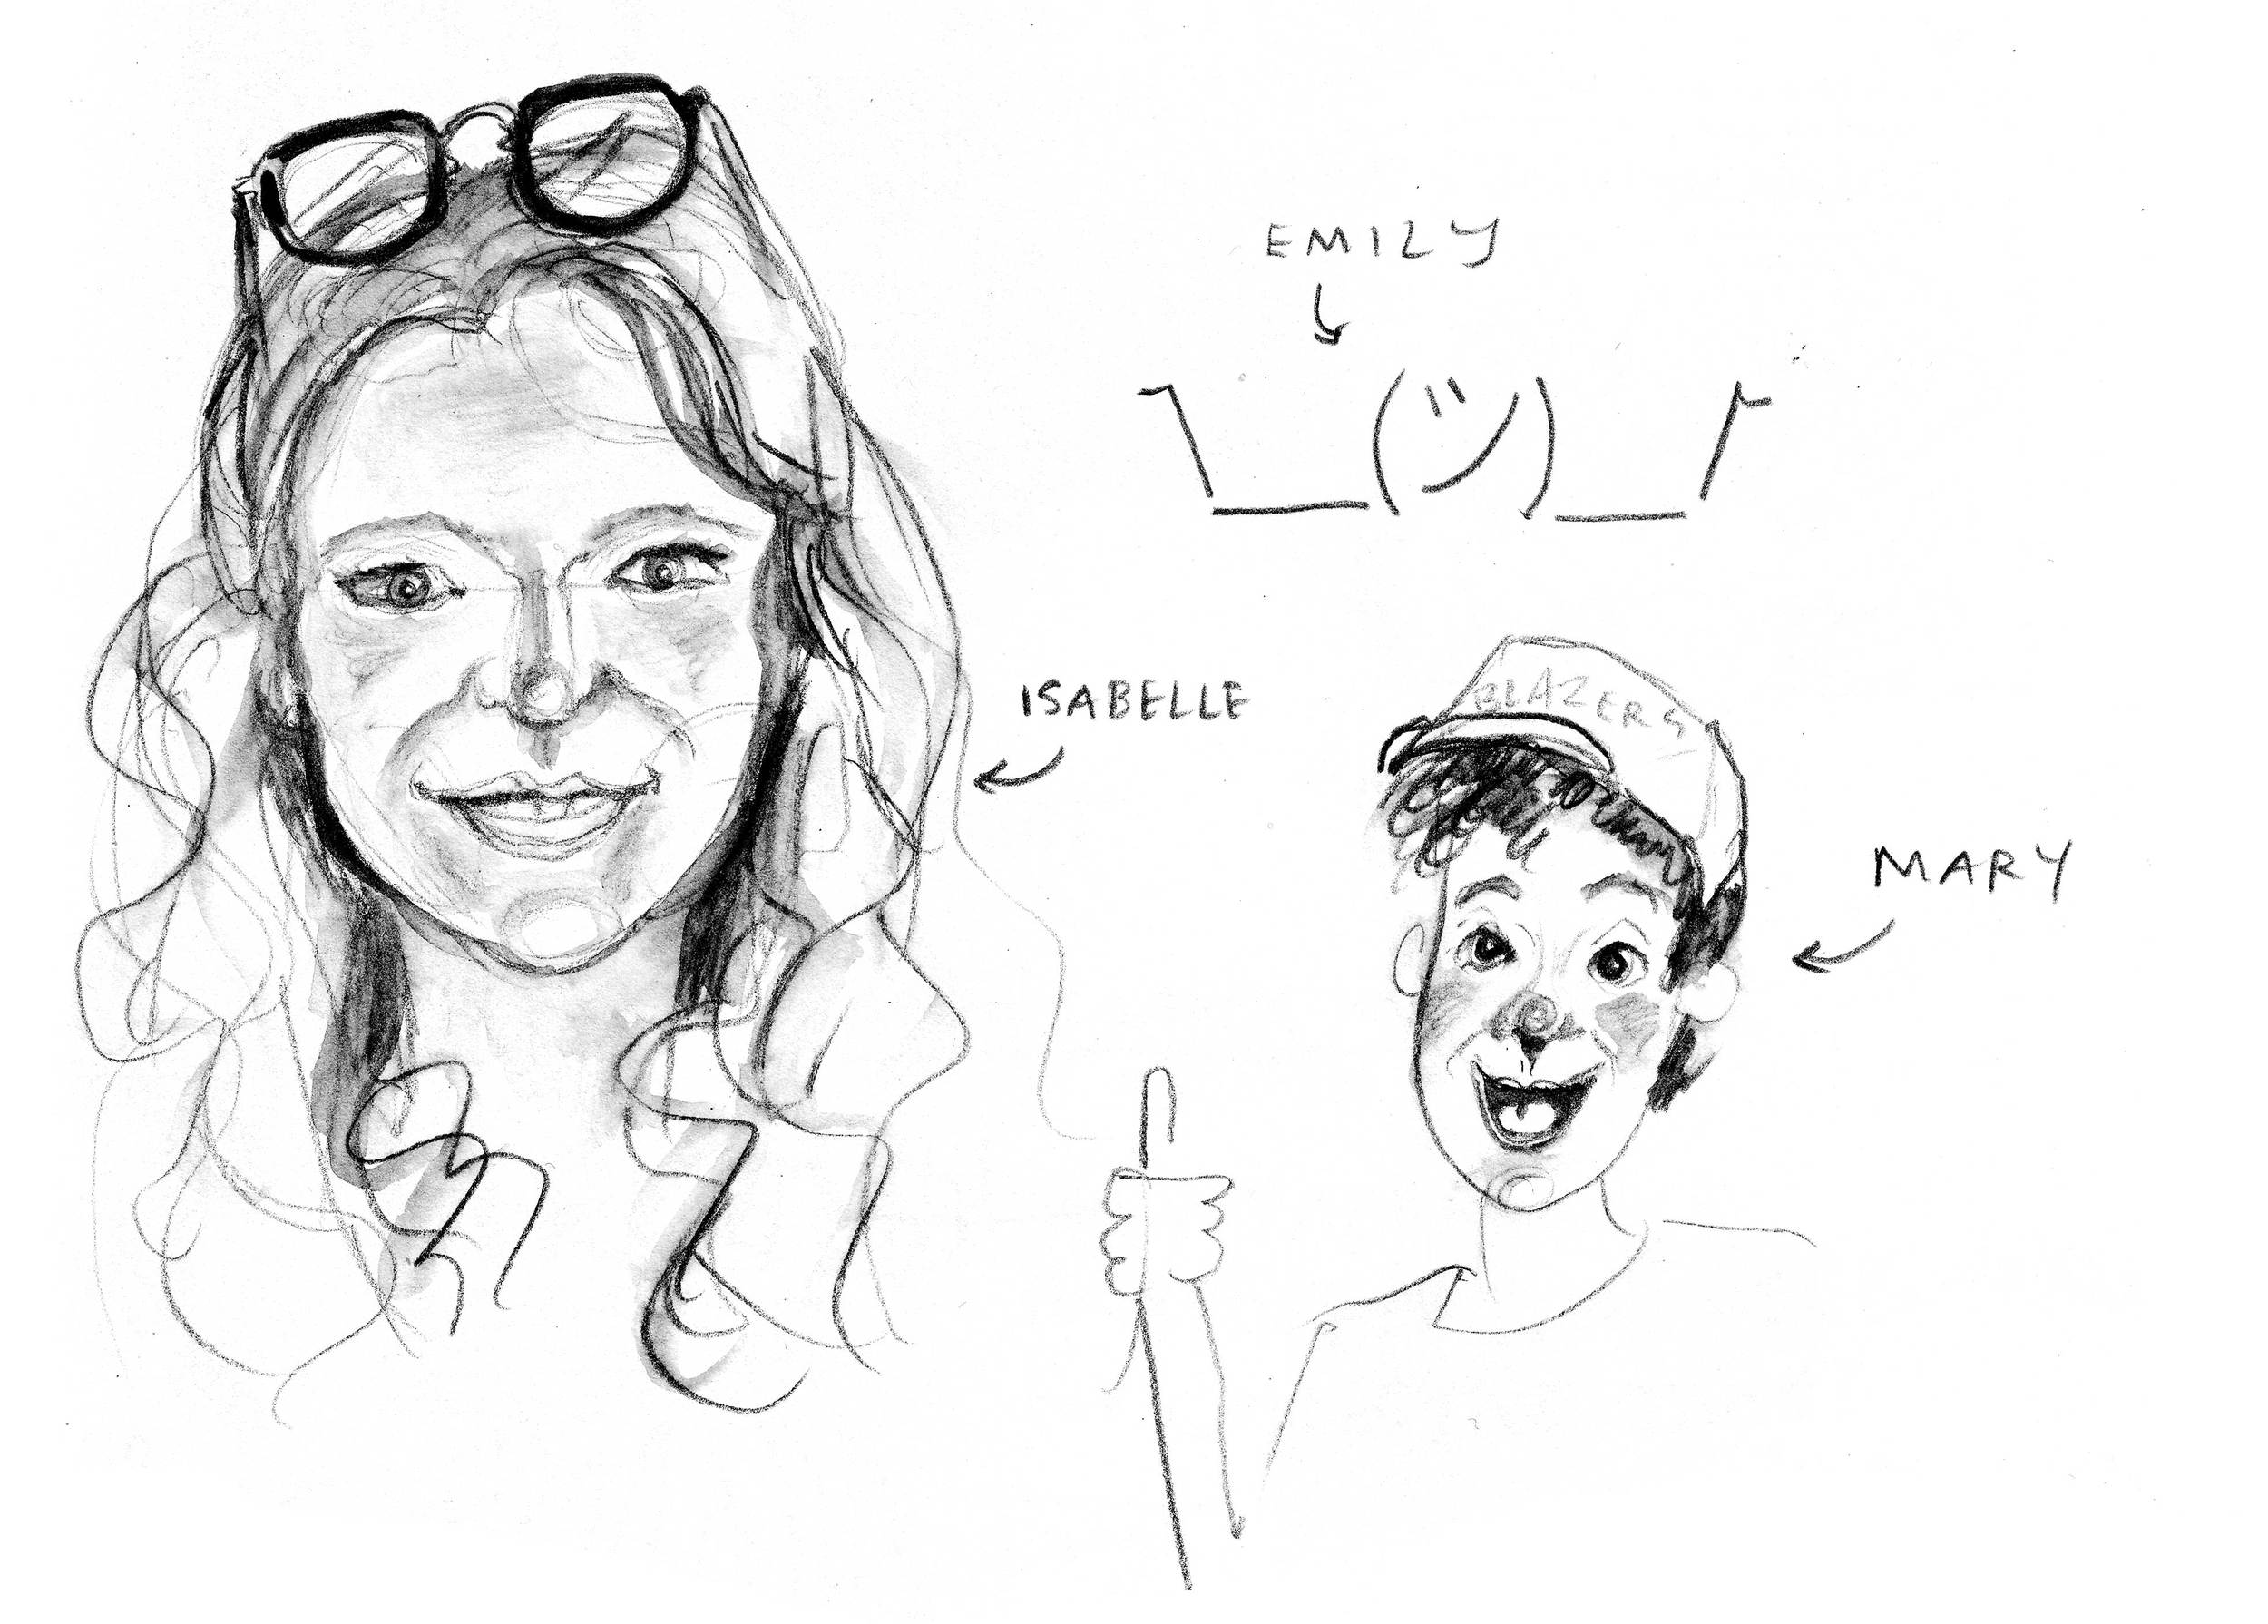 Brunch portraits, water-soluble graphite, 2013